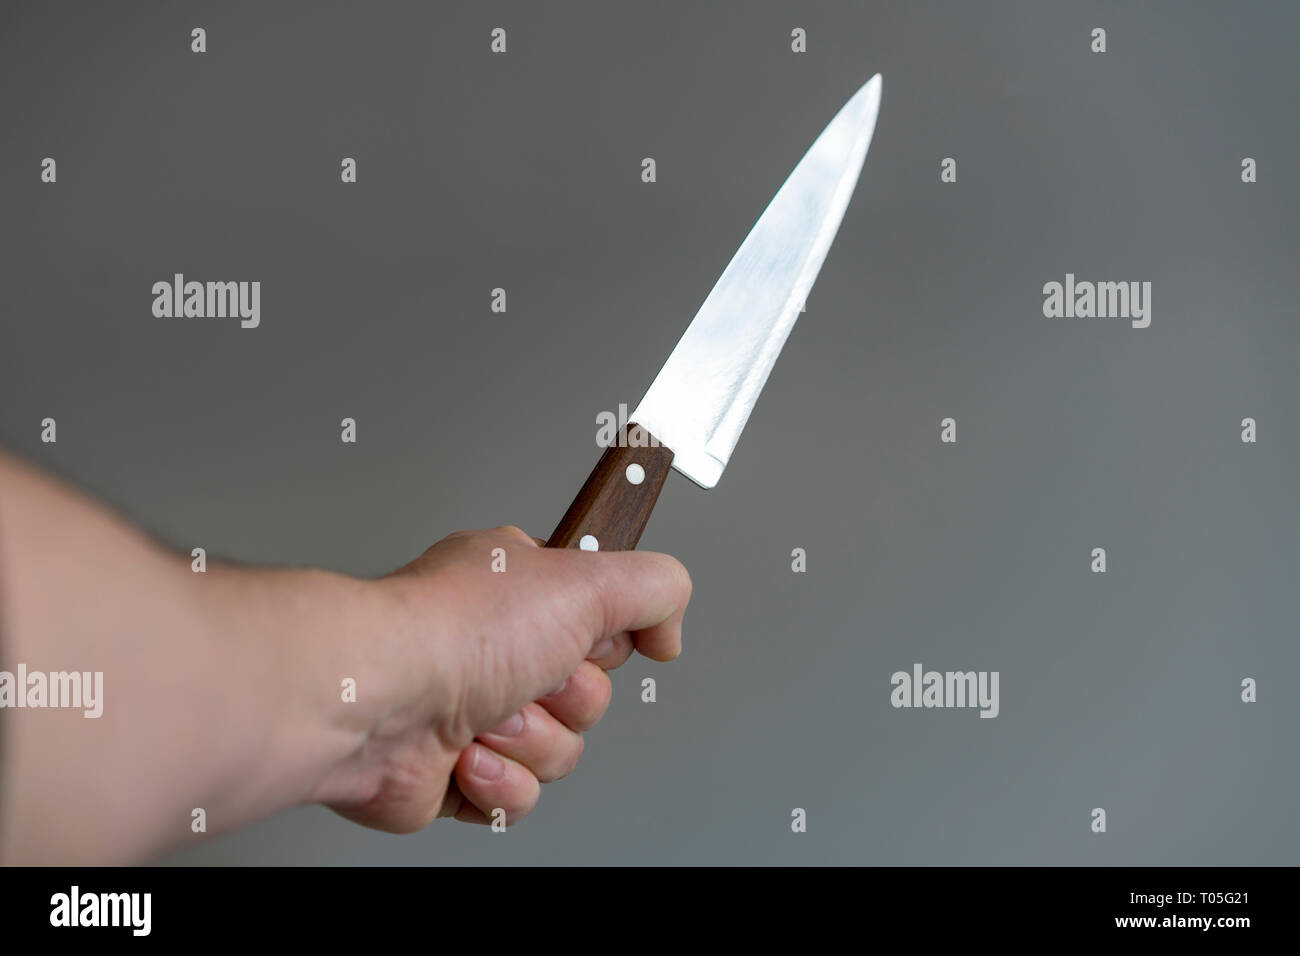 Man's hand with a knife on gray background. Concept of violence. Stock Photo